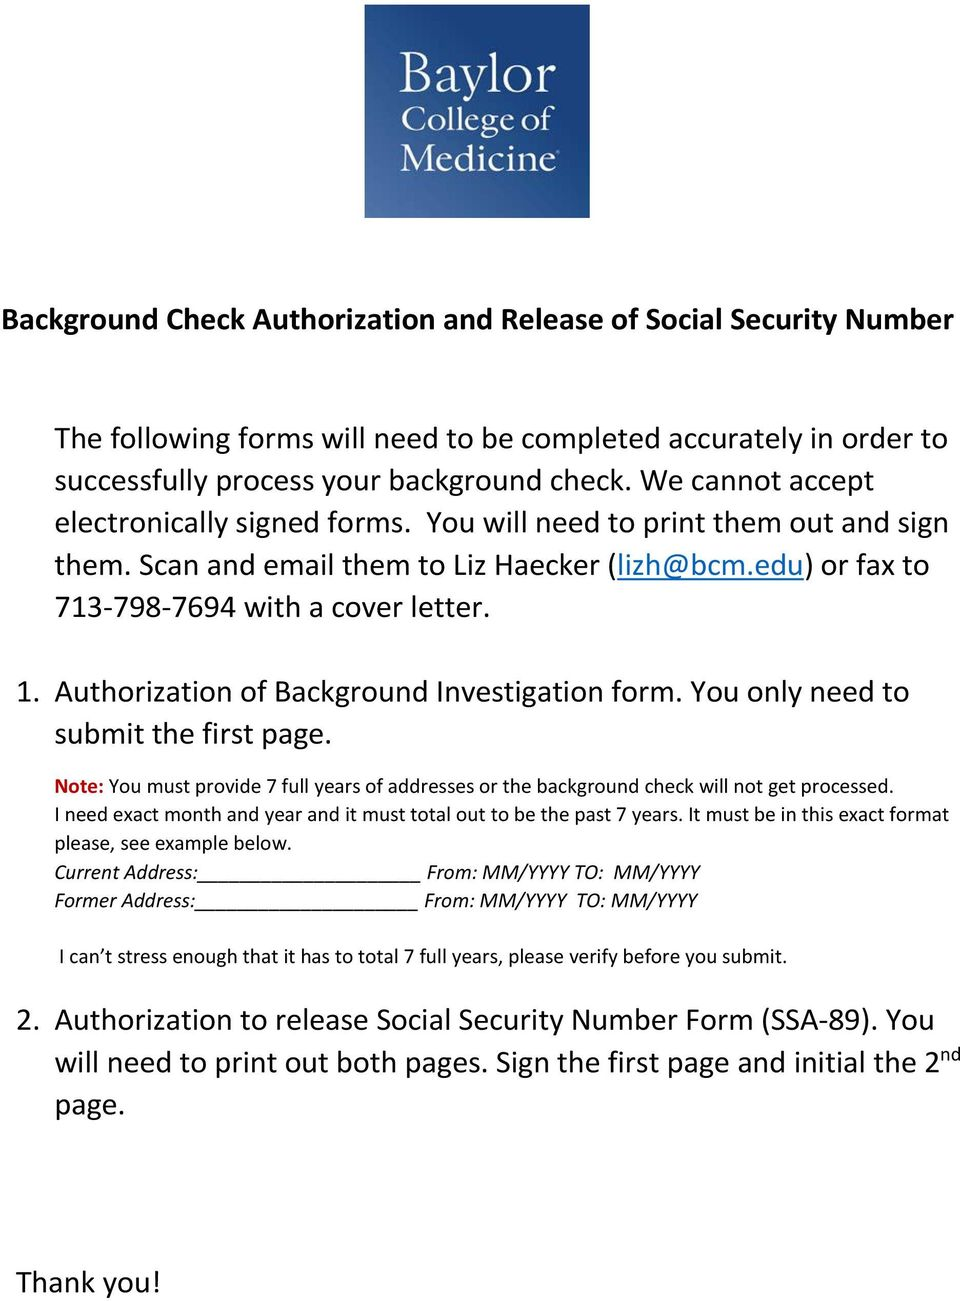 Authorization of Background Investigation form. You only need to submit the first page. Note: You must provide 7 full years of addresses or the background check will not get processed.